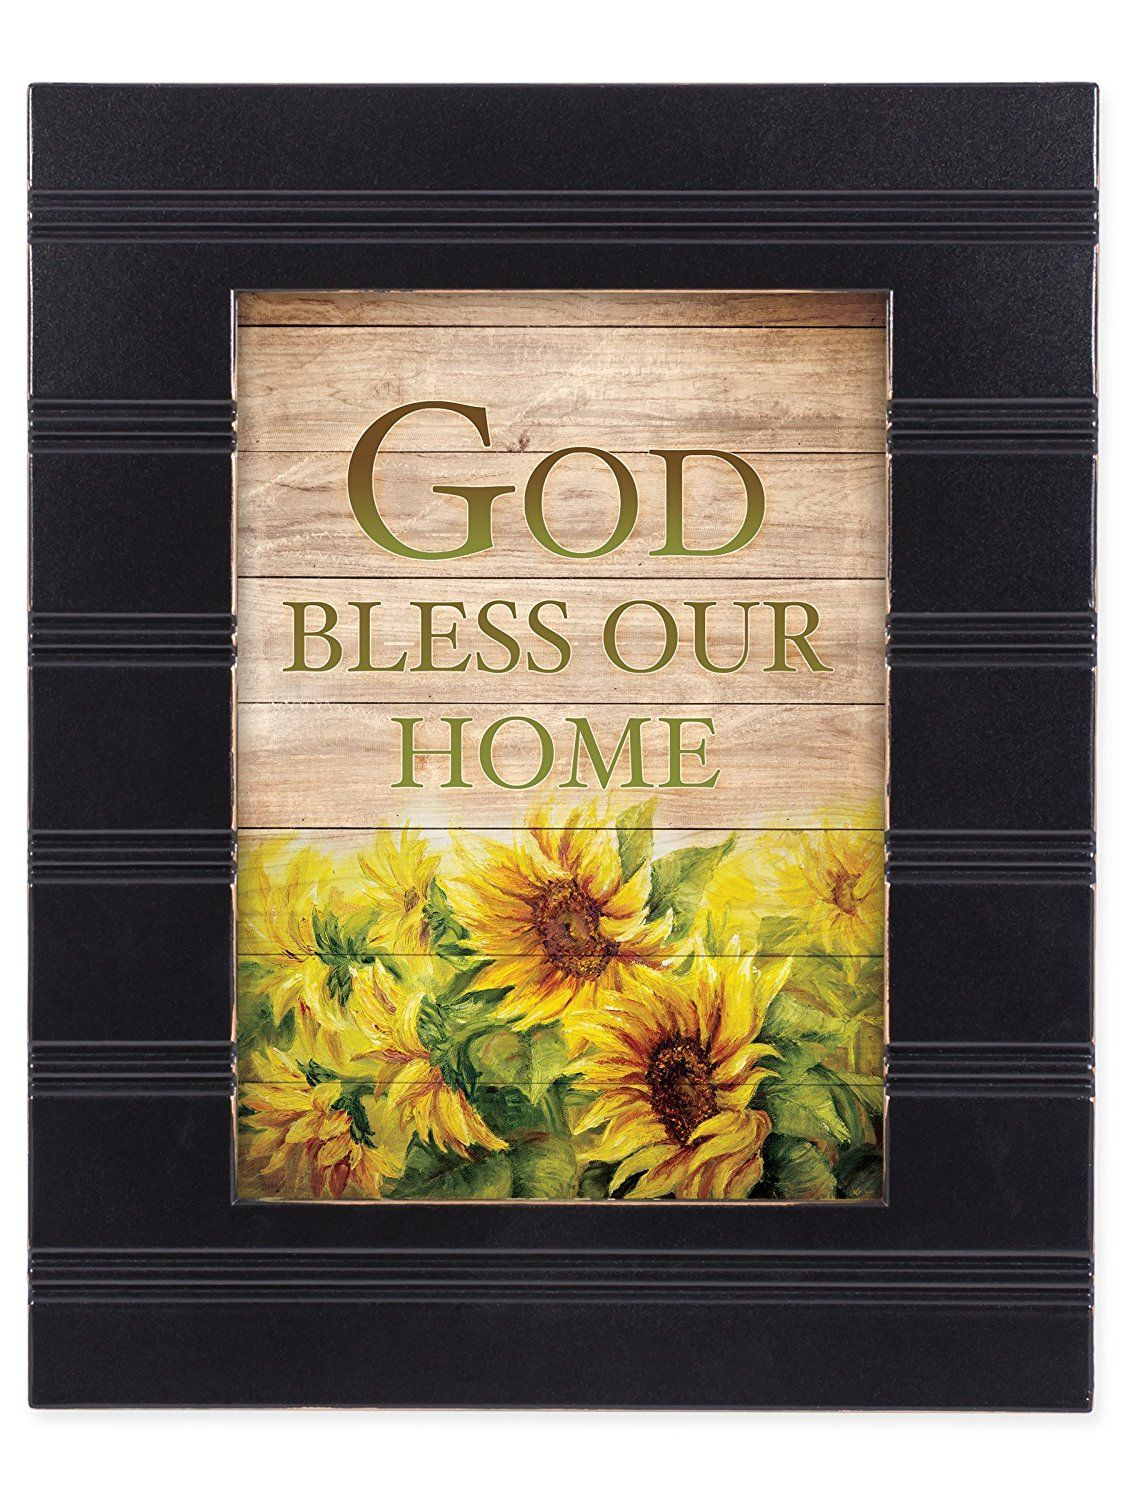 God Bless Our Home Black with Gold Trim 8 x 10 Framed Wall Art ...